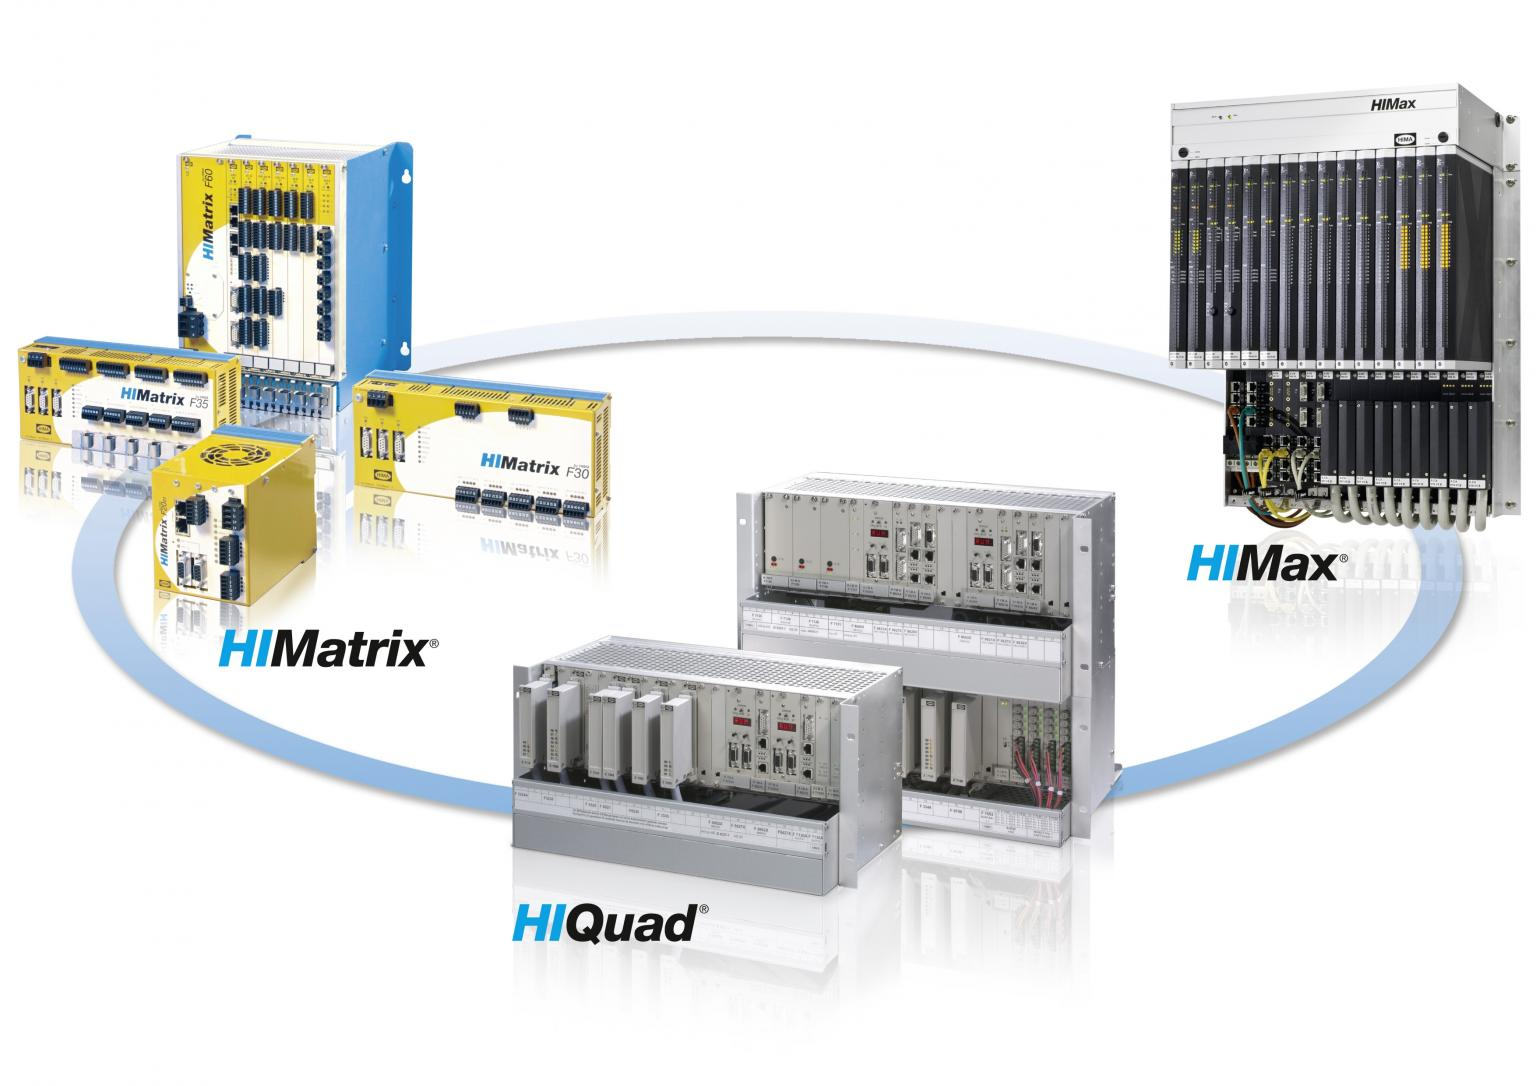 The new safety protocol HIPRO-S V2 enables Ethernet-based, safety-related communication (SIL 3) between the three HIMA product families: HIMatrix, HIMax and HIQuad